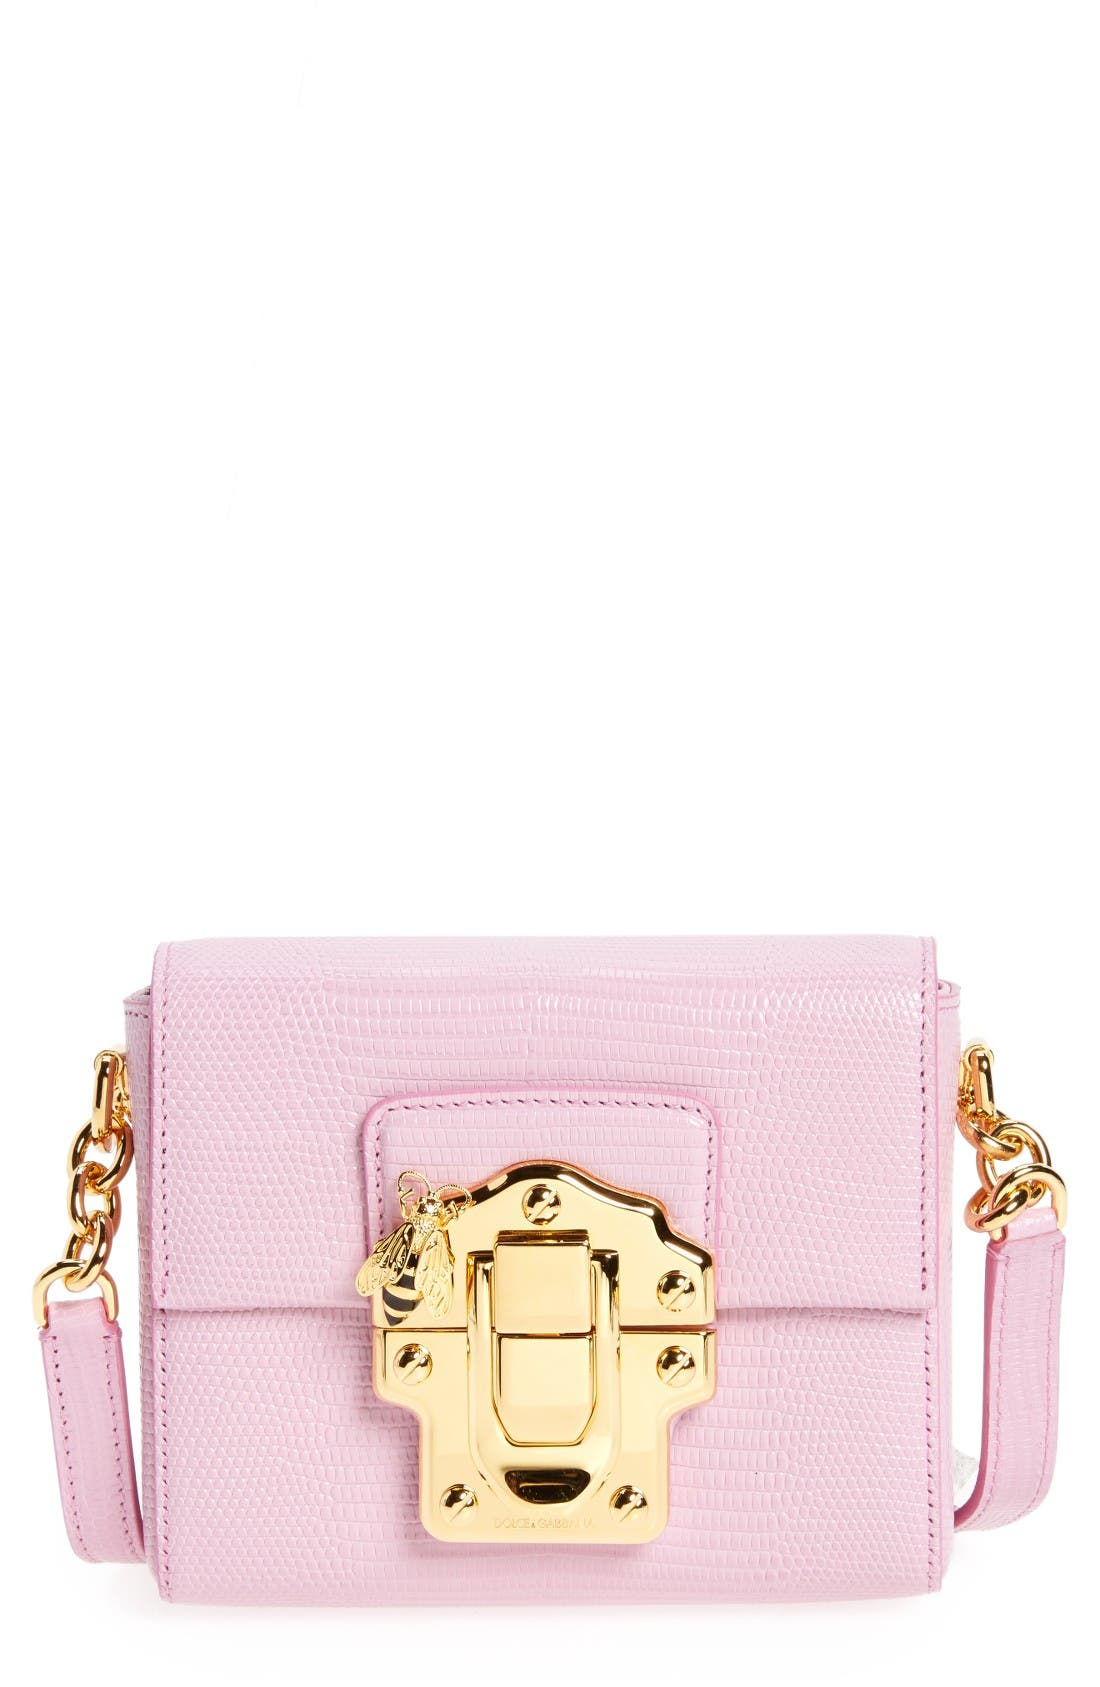 Main Image - Dolce&Gabbana Mini Luccia Crossbody Bag